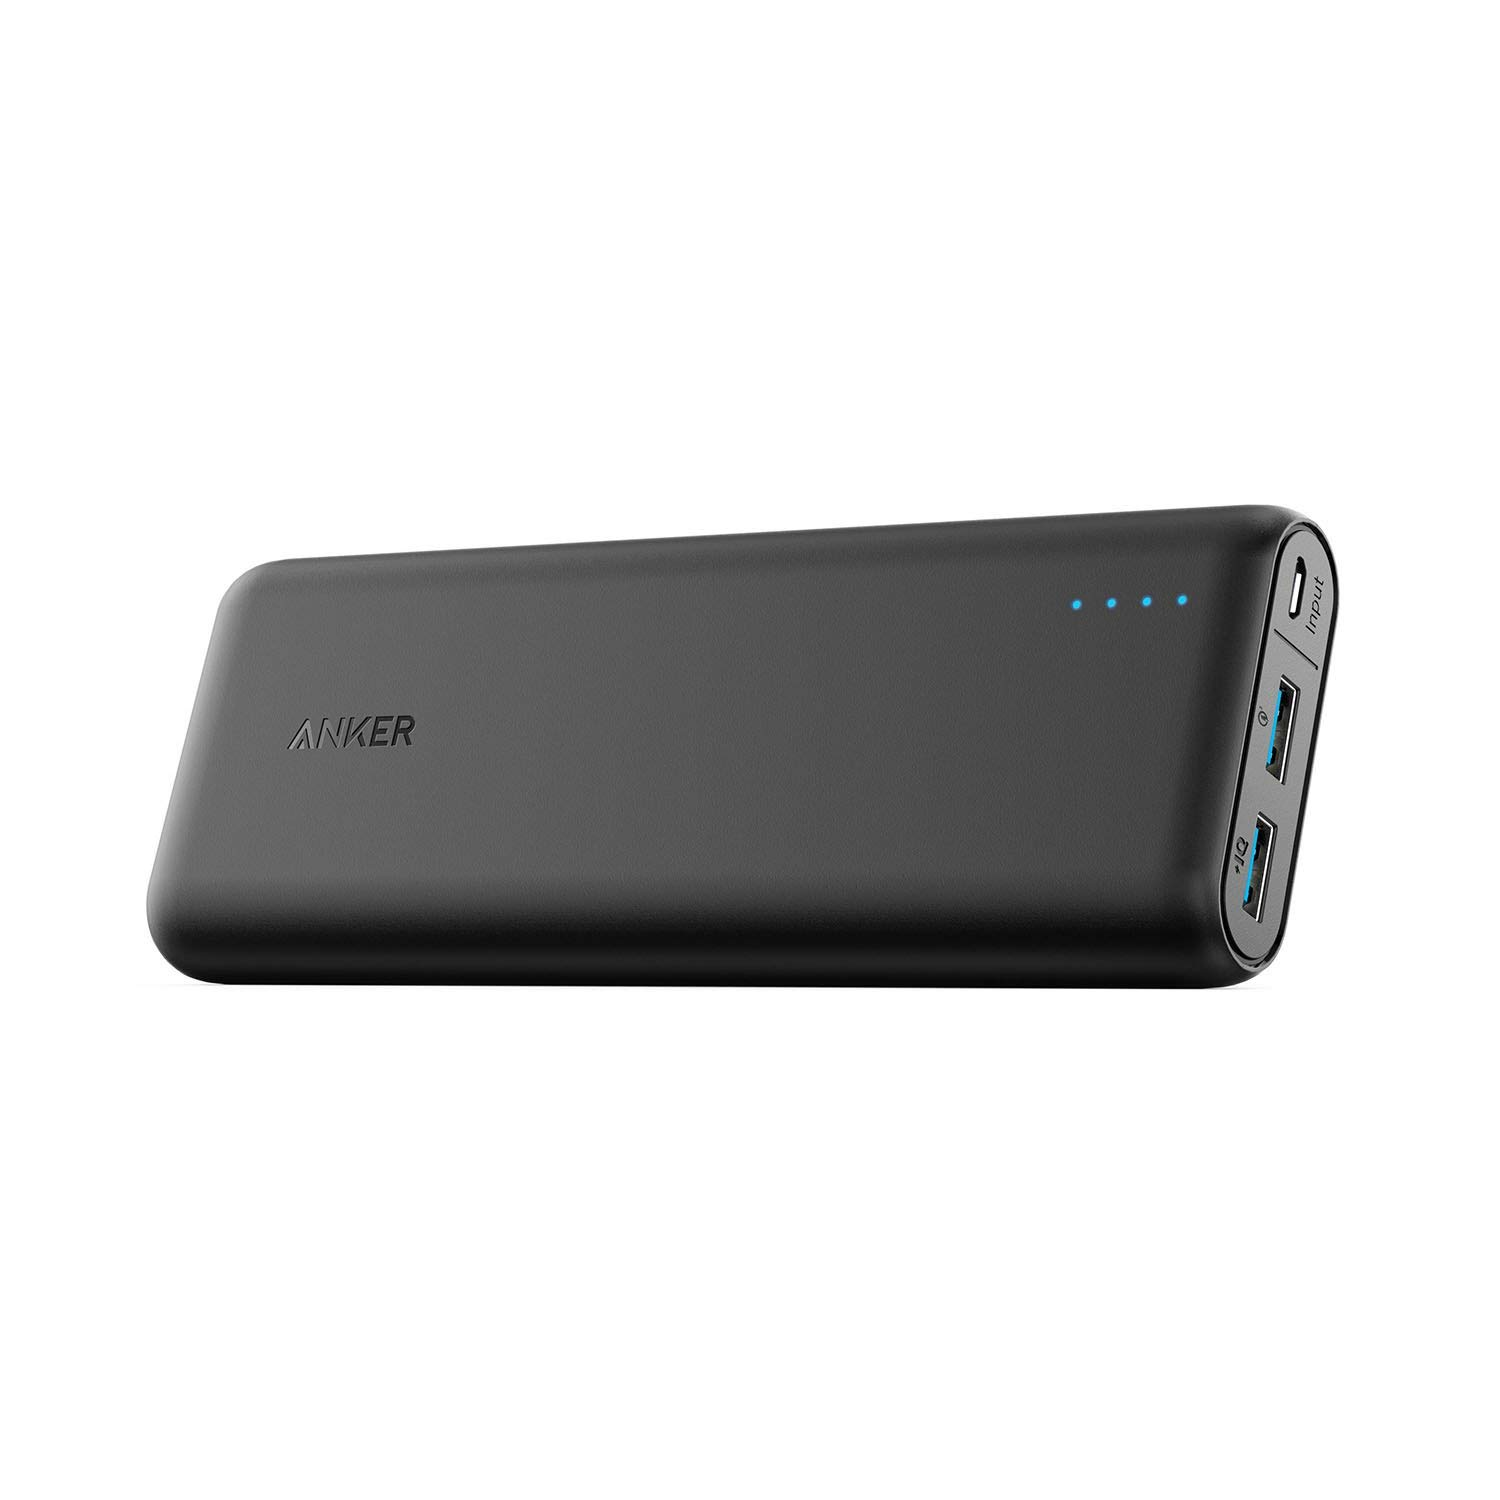 Anker-PowerCore-Speed-20000-20000mAh-Qualcomm-Quick-Charge-3-0--PowerIQ-Portable-Charger-with-Quick-Charge-Recharging-Power-Bank-for-Samsung-iPhone-iPad-and-More